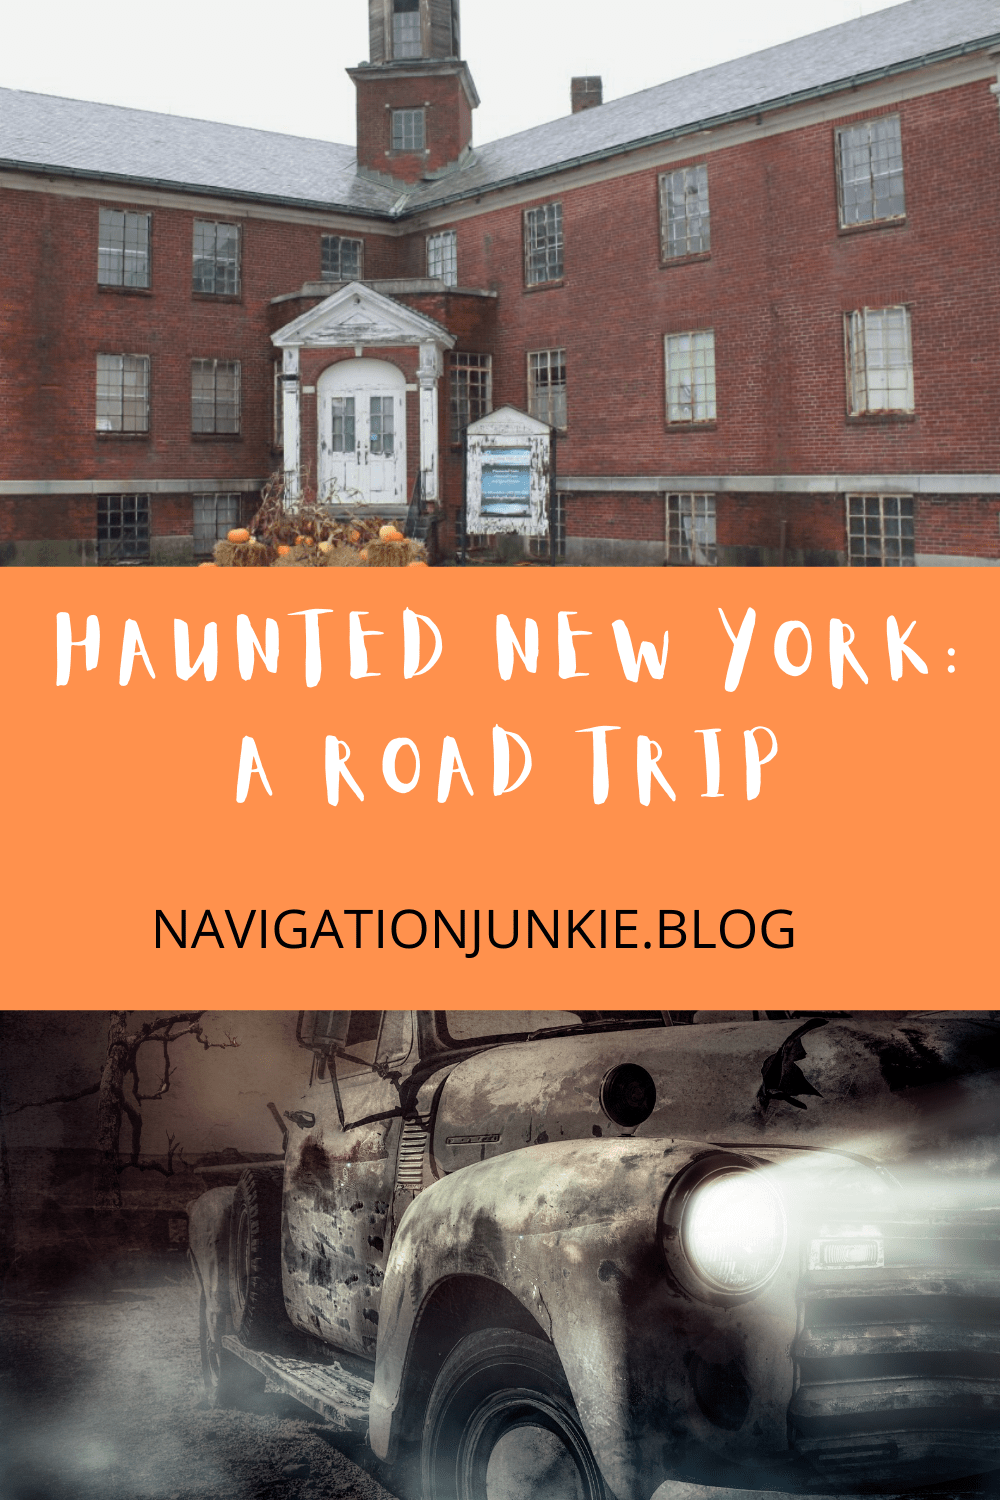 Discover Haunted New York along the Haunted History Trail featuring haunted inns, hotels, pubs, castles, and asylums.